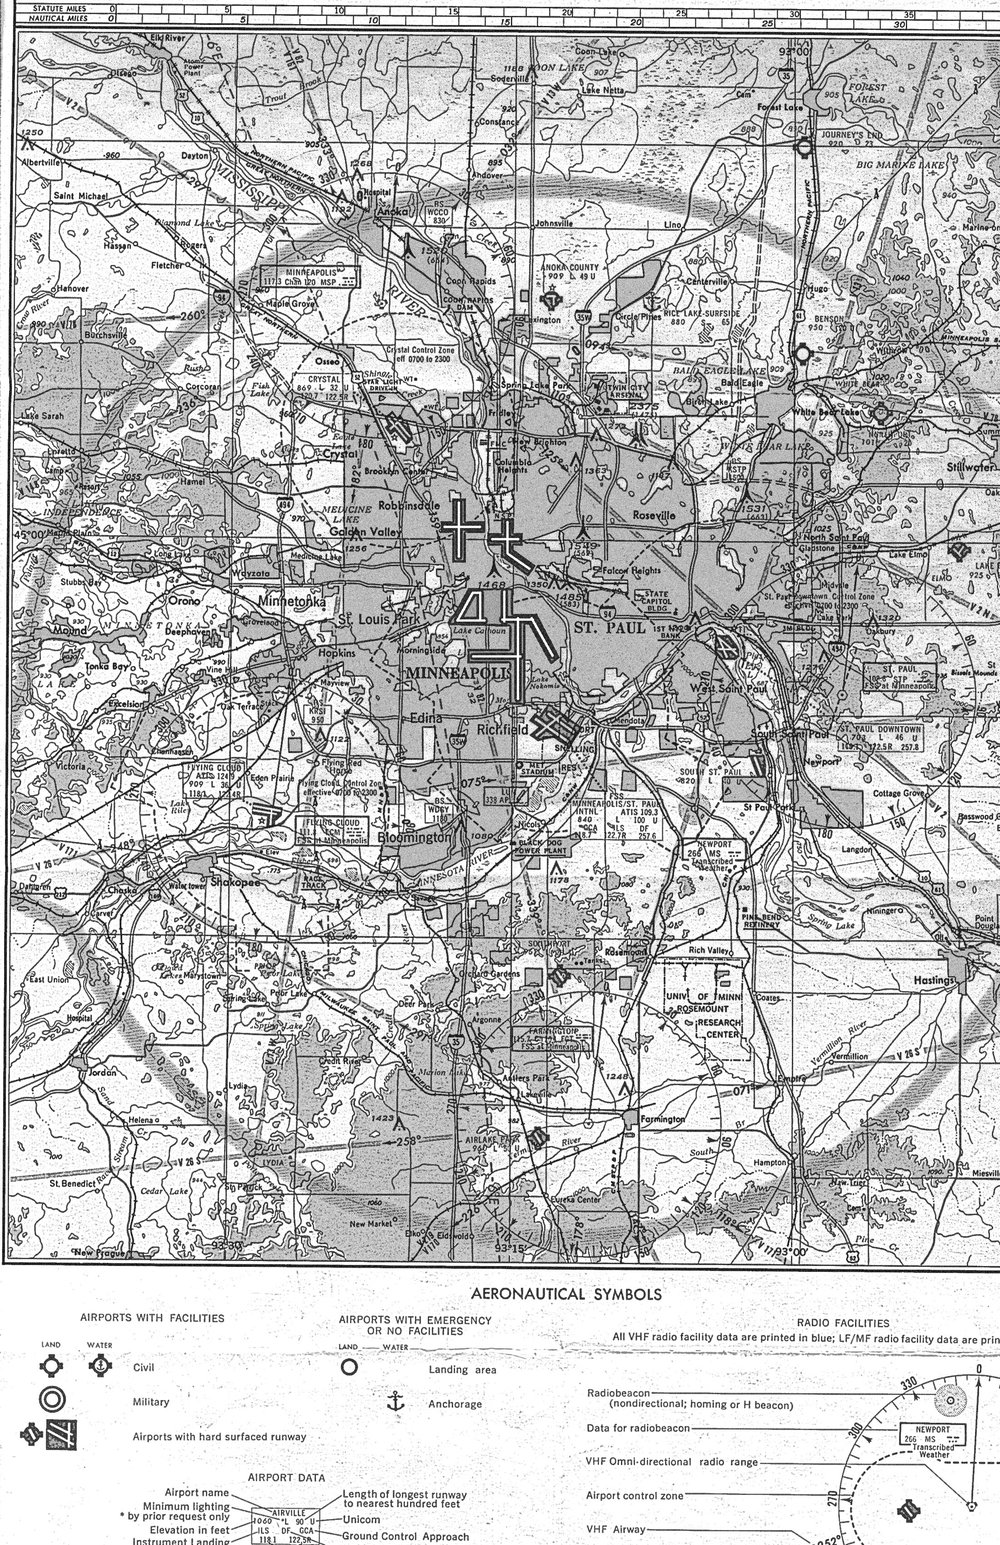 A preliminary aeronautical chart from 1974